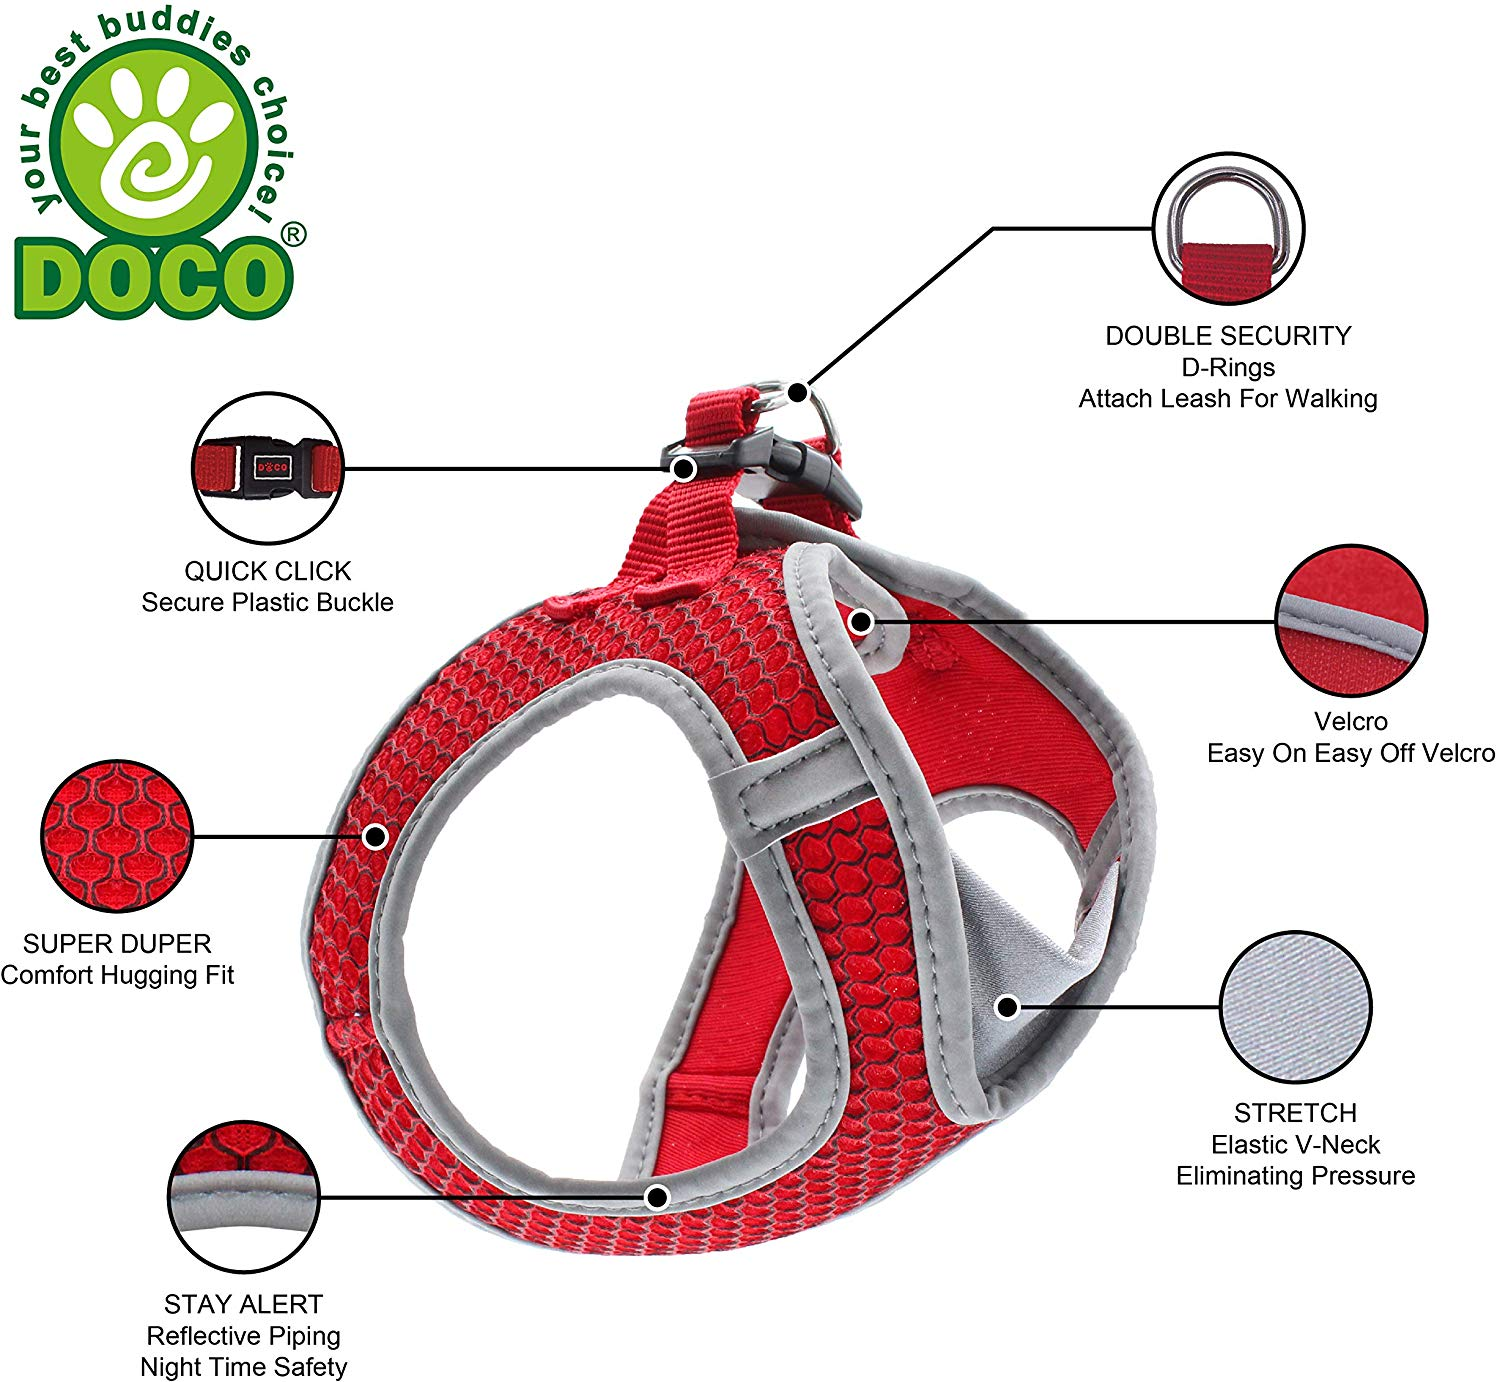 DOCO Athletica Adjustable Velcro V-Neck Dog Harness - No Pull, No Choke, Custom-Fit & Perfect for Small and Medium Sized Dogs